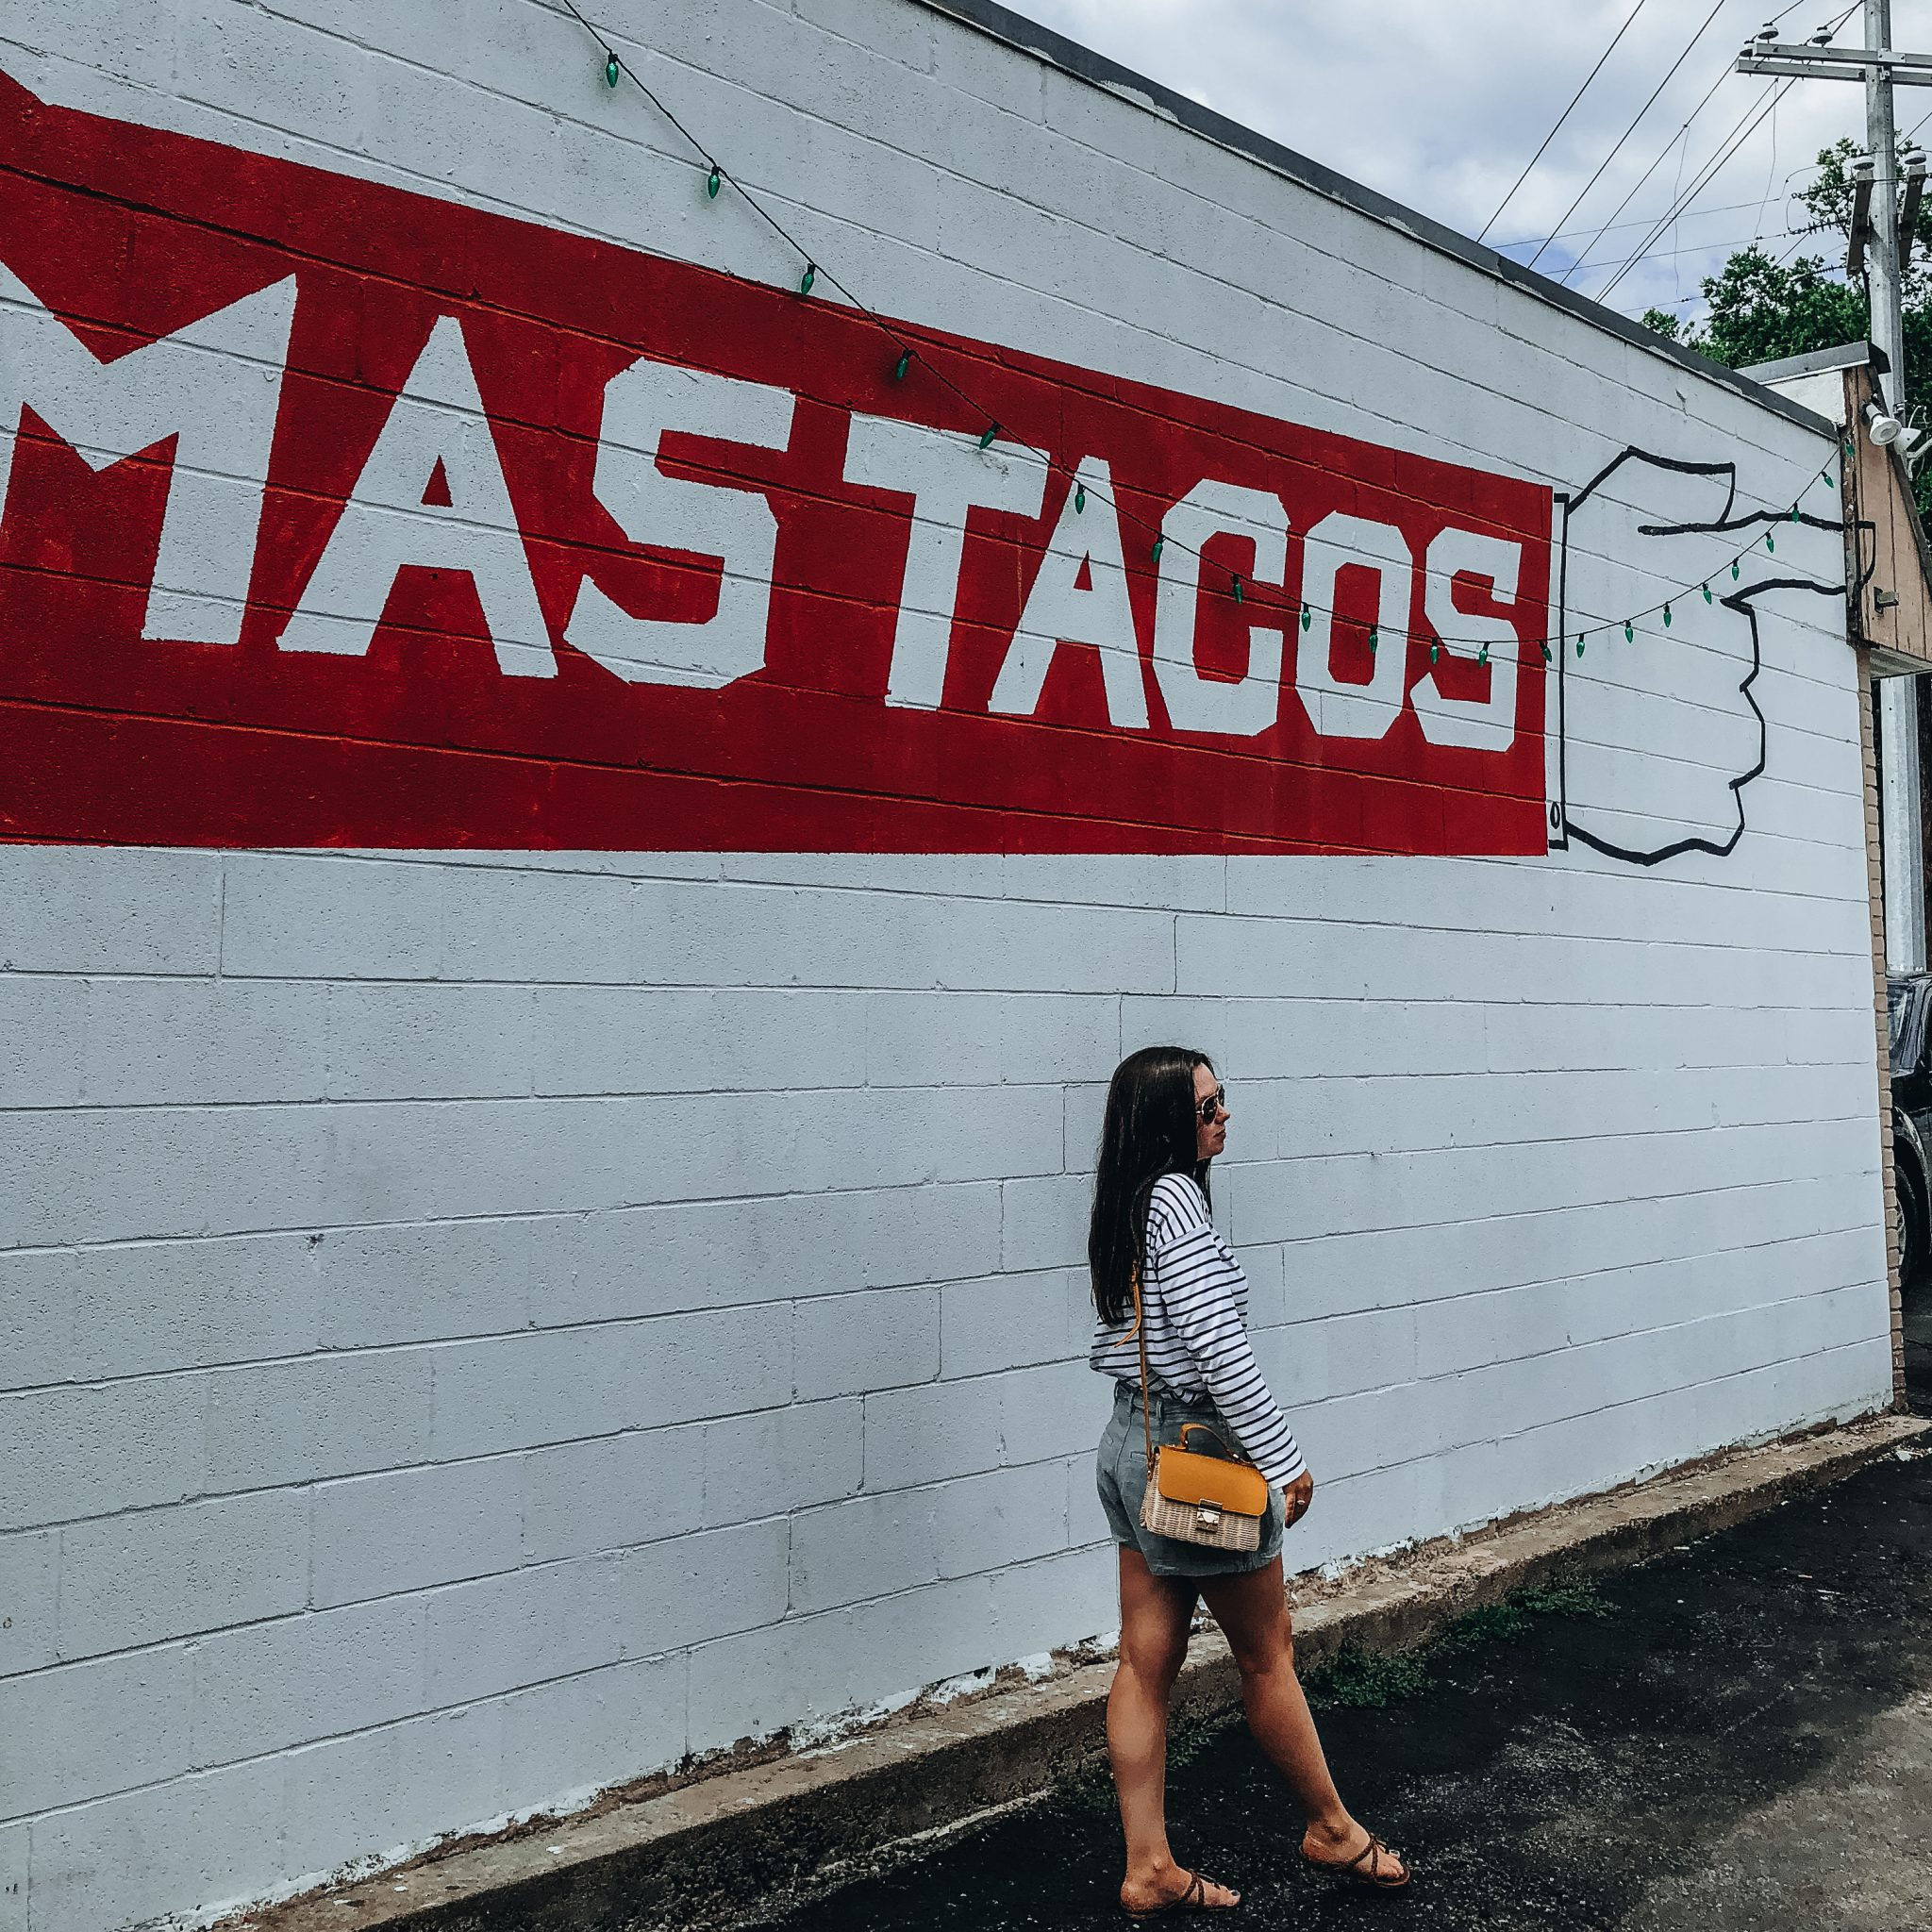 mas tacos nashville sign